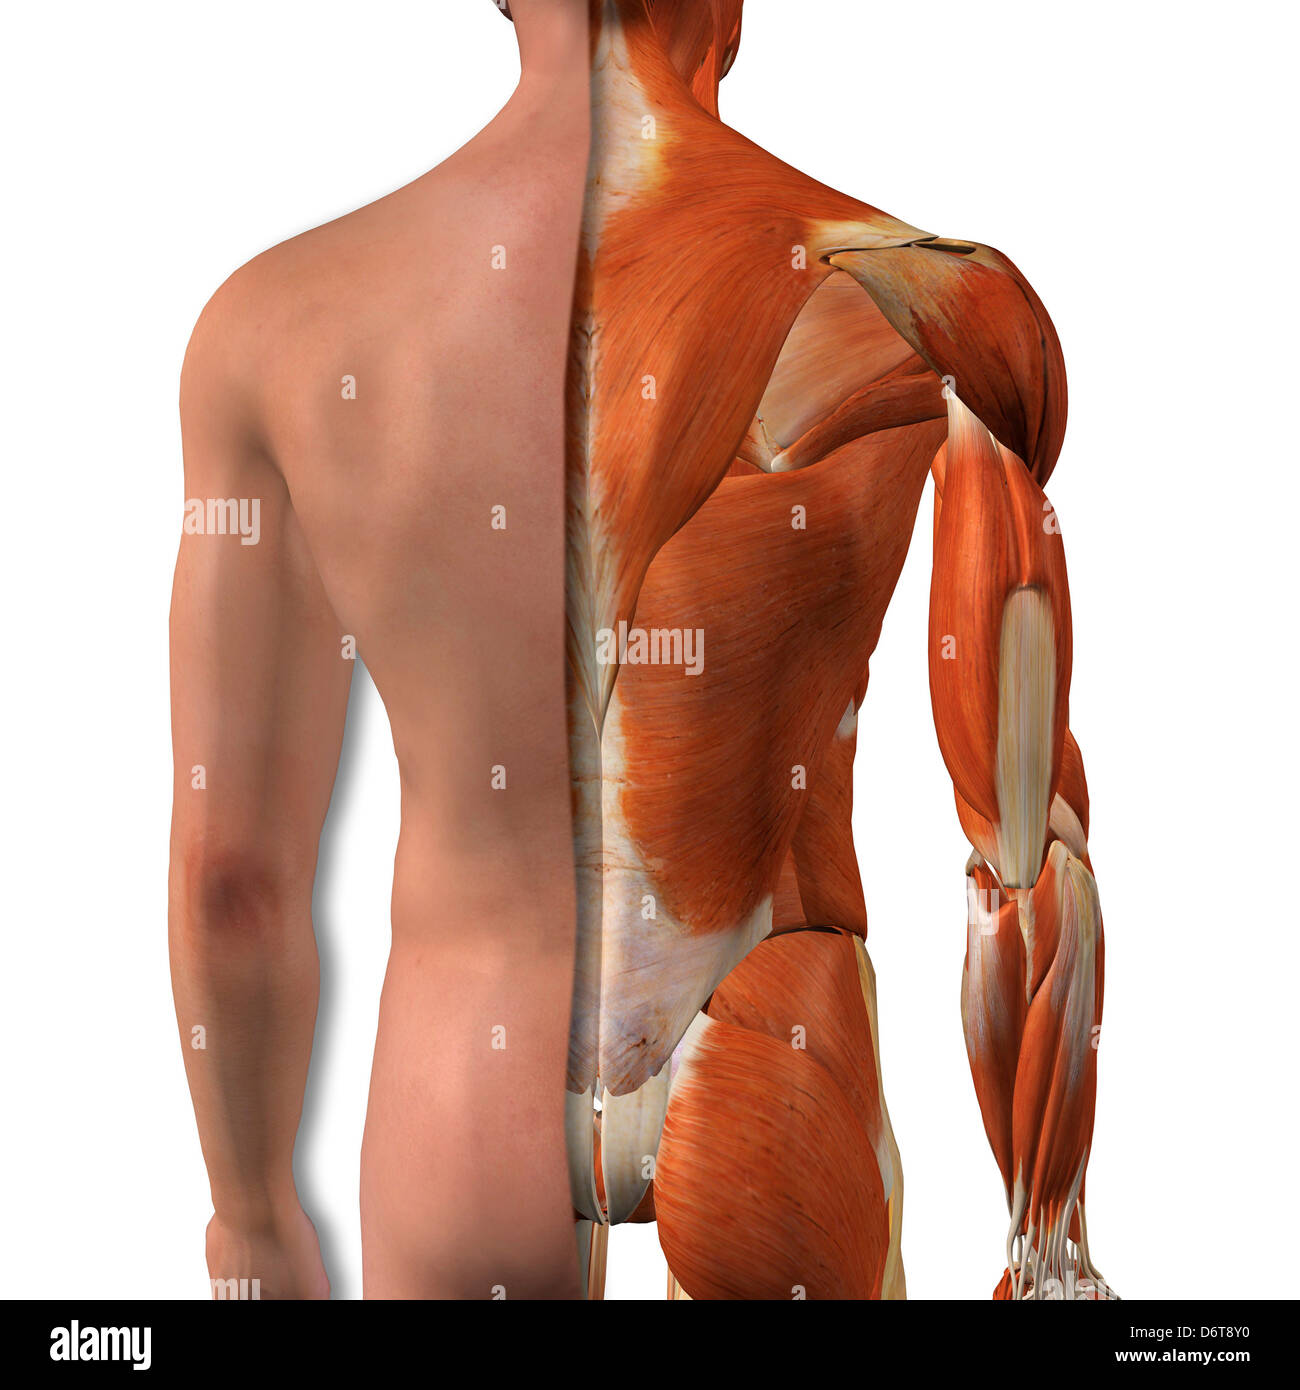 Cross-section anatomy of male buttocks and back muscles Stock Photo ...